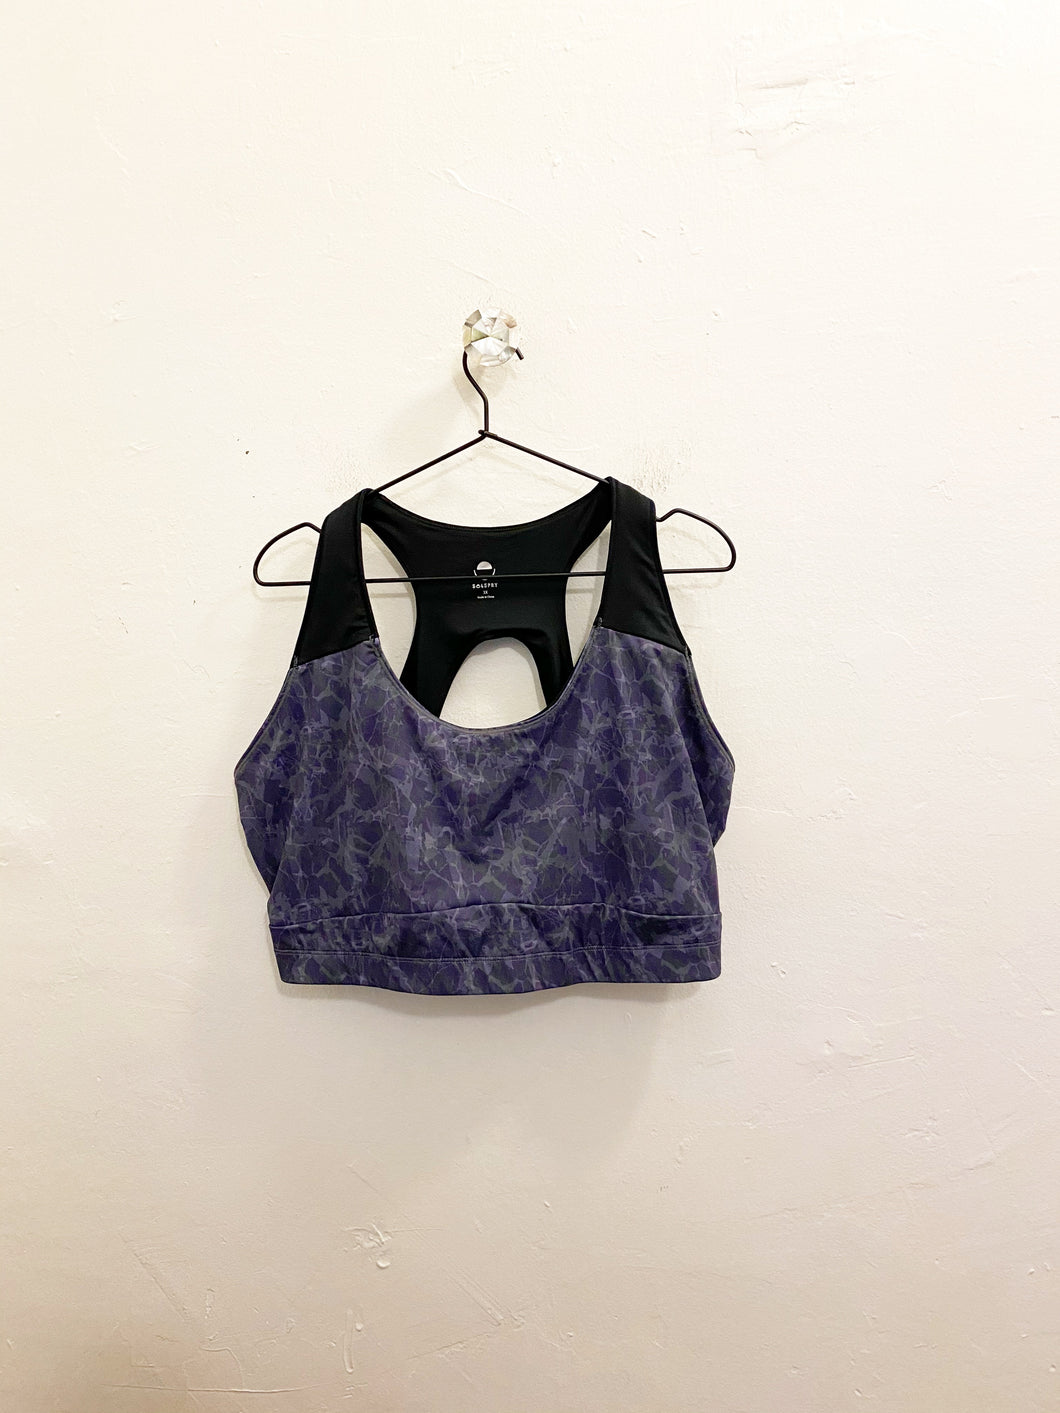 Solspry Sports Bra & Leggings Set Sz 3x